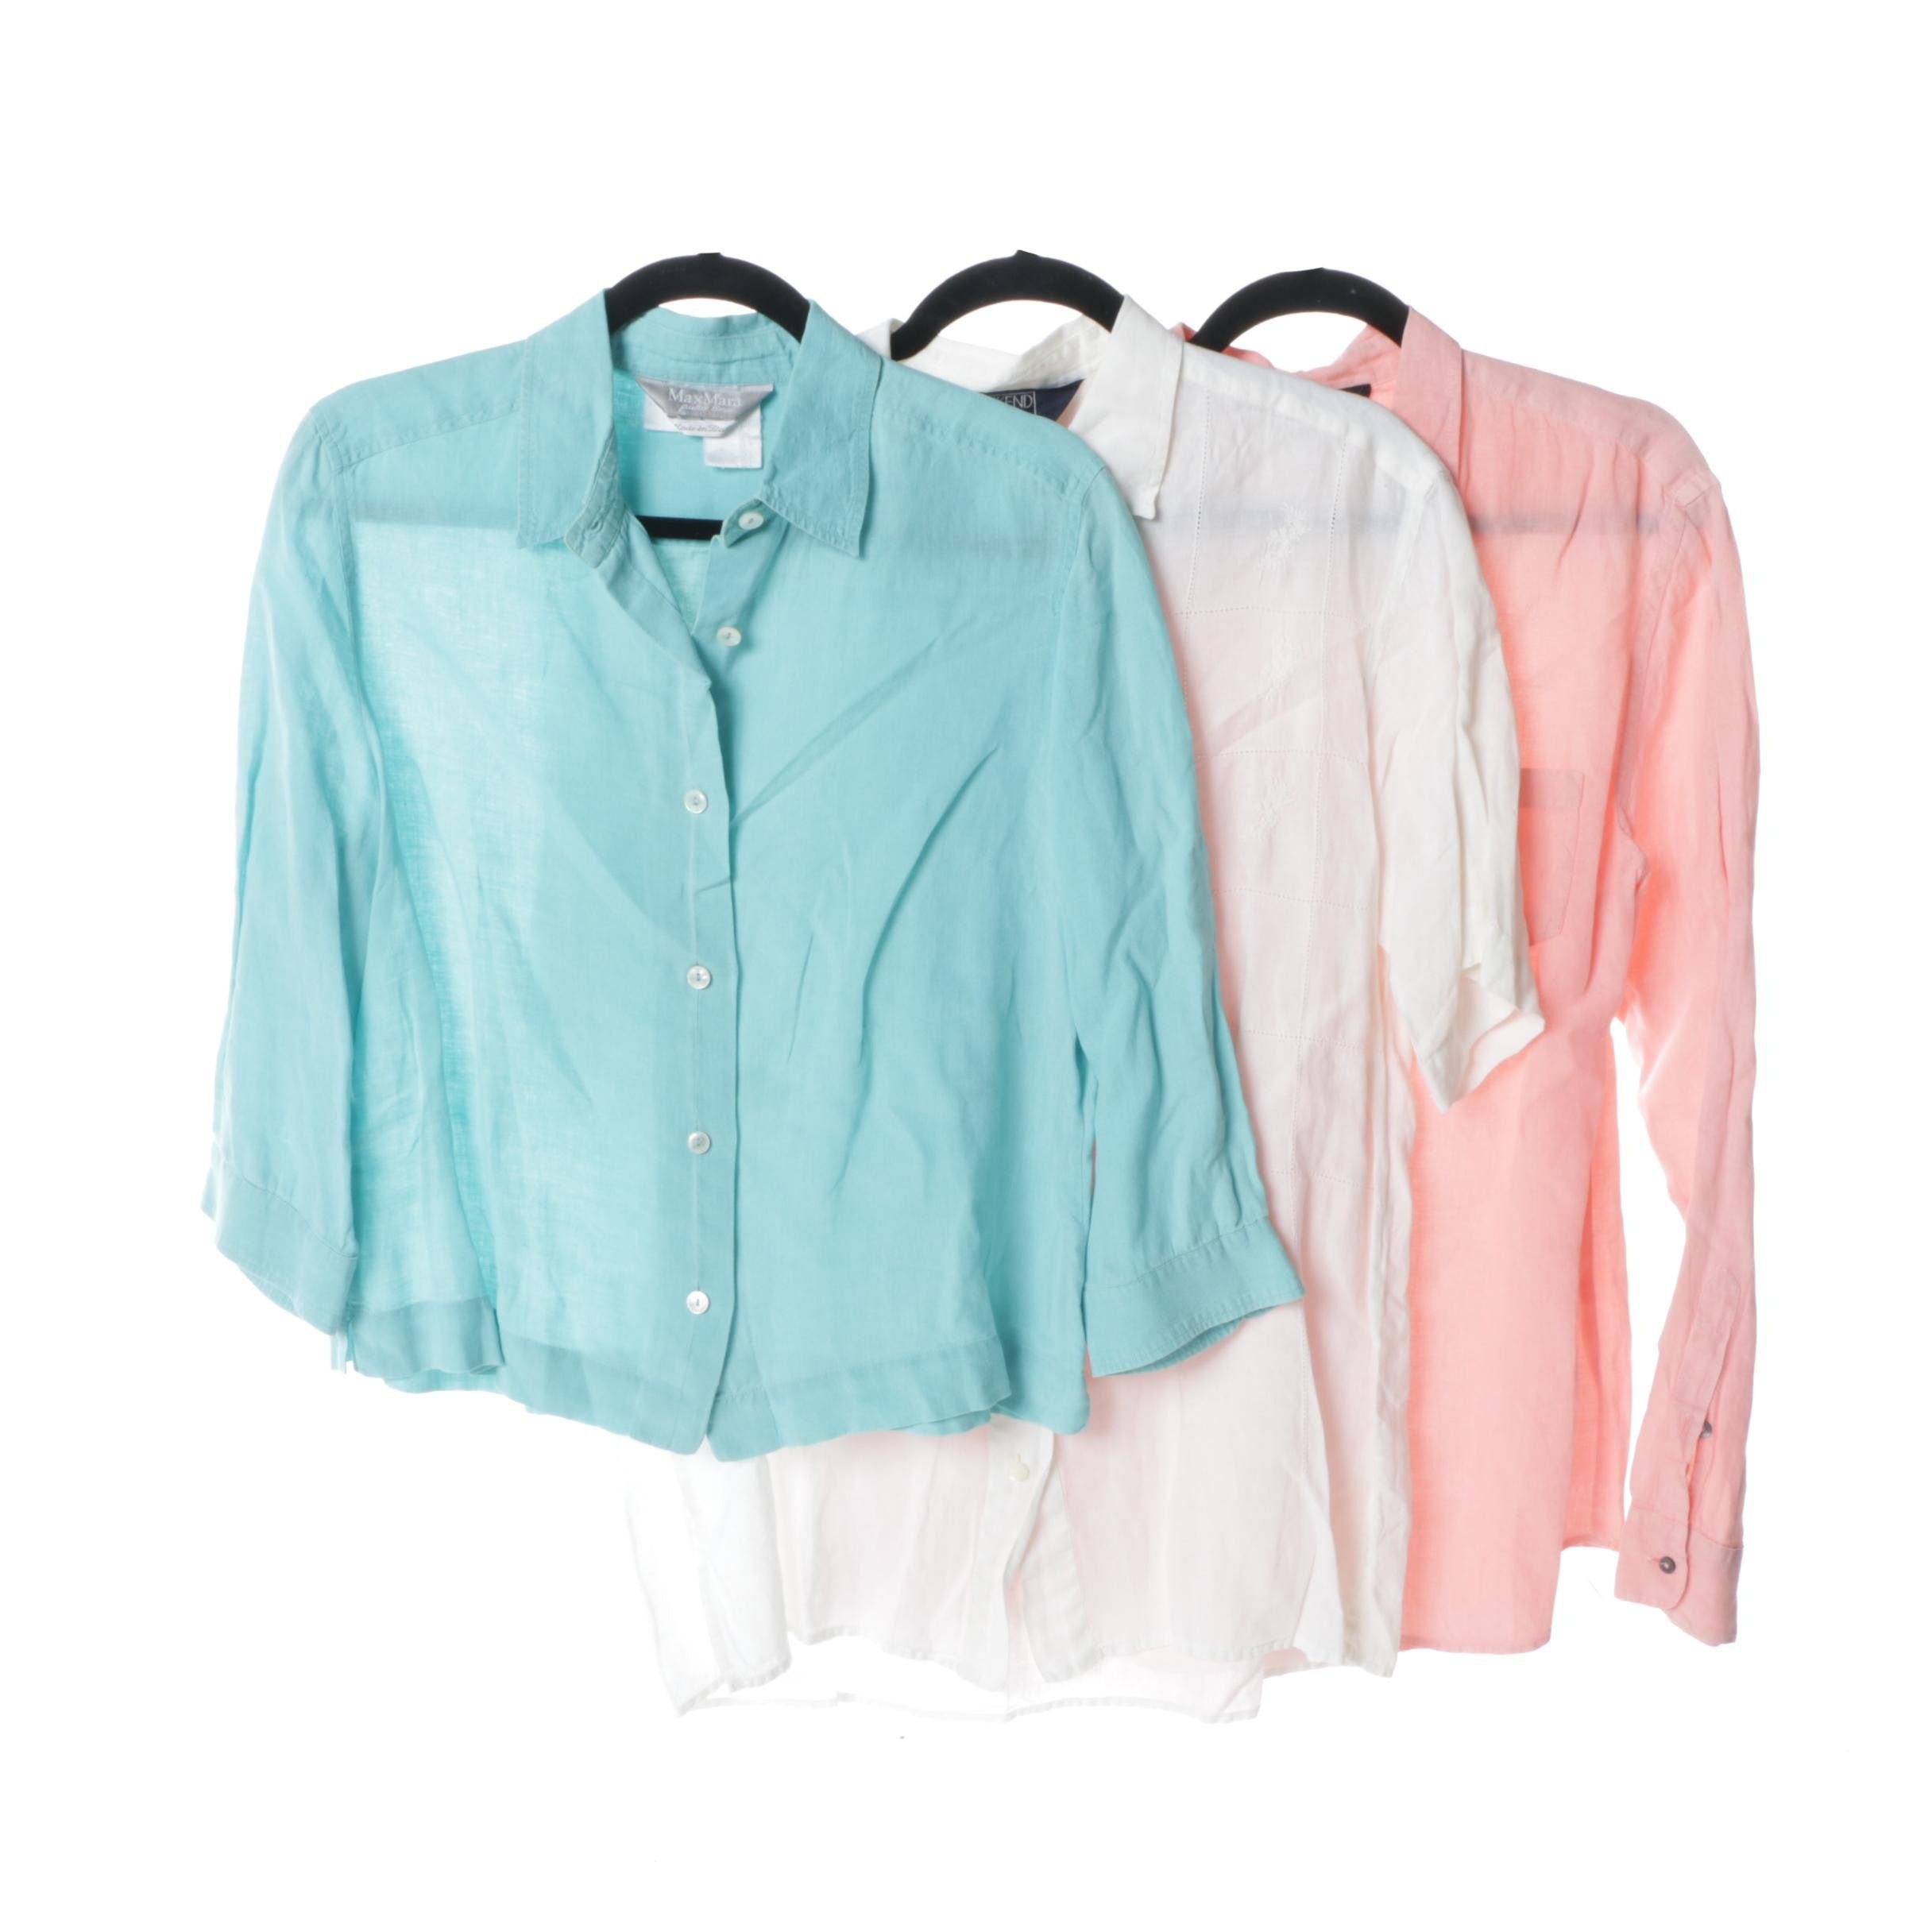 Women's Weekend by MaxMara Italian Linen Shirts